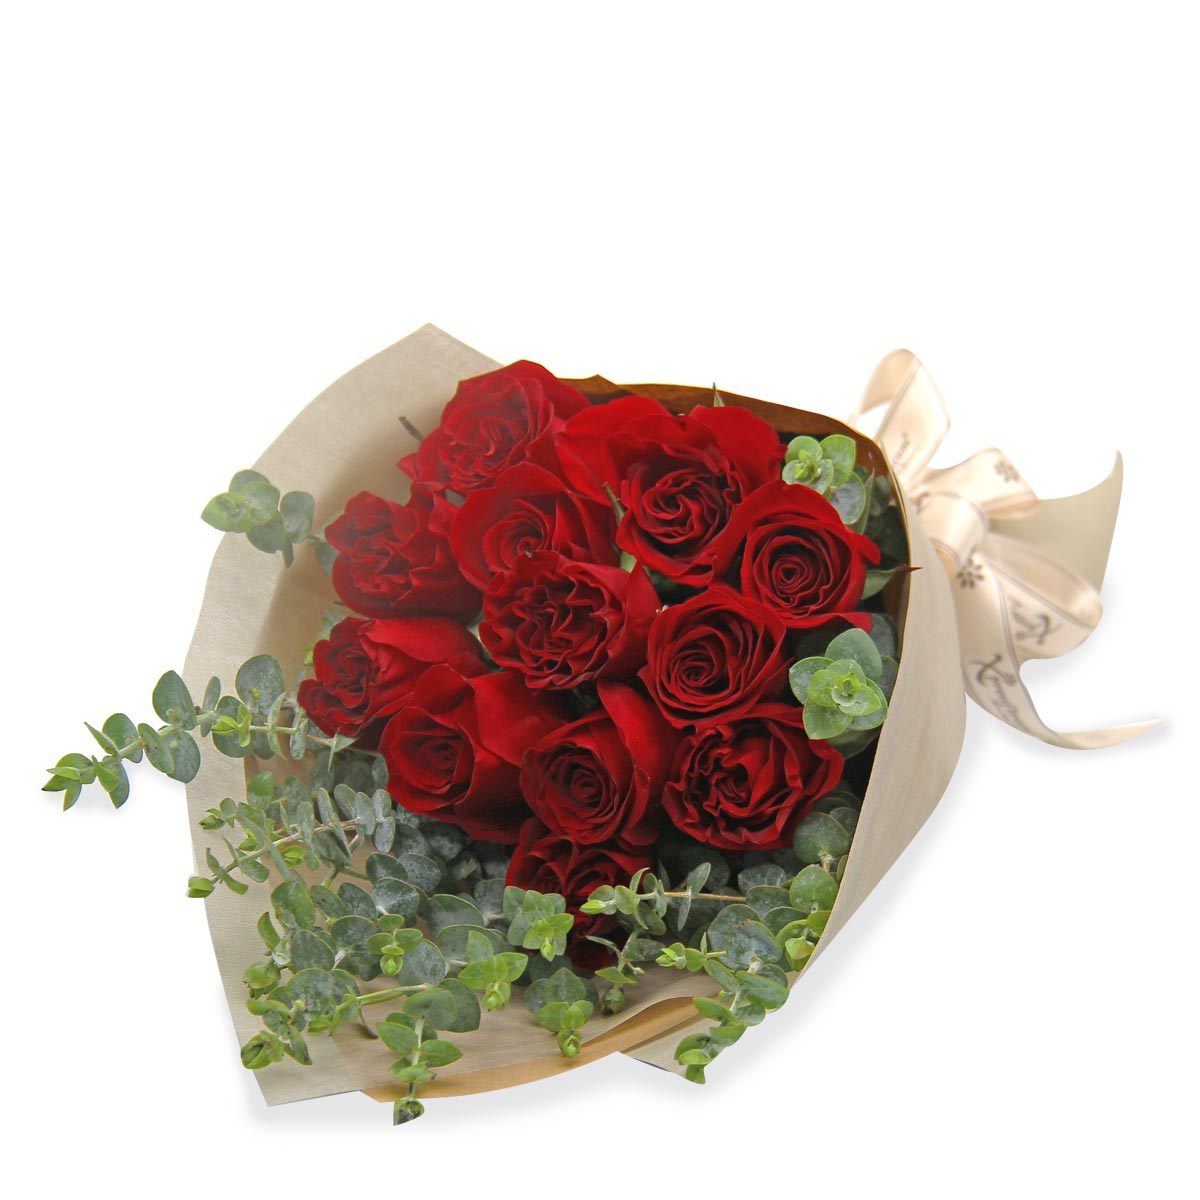 VP1412 Serene Surprise red roses bq